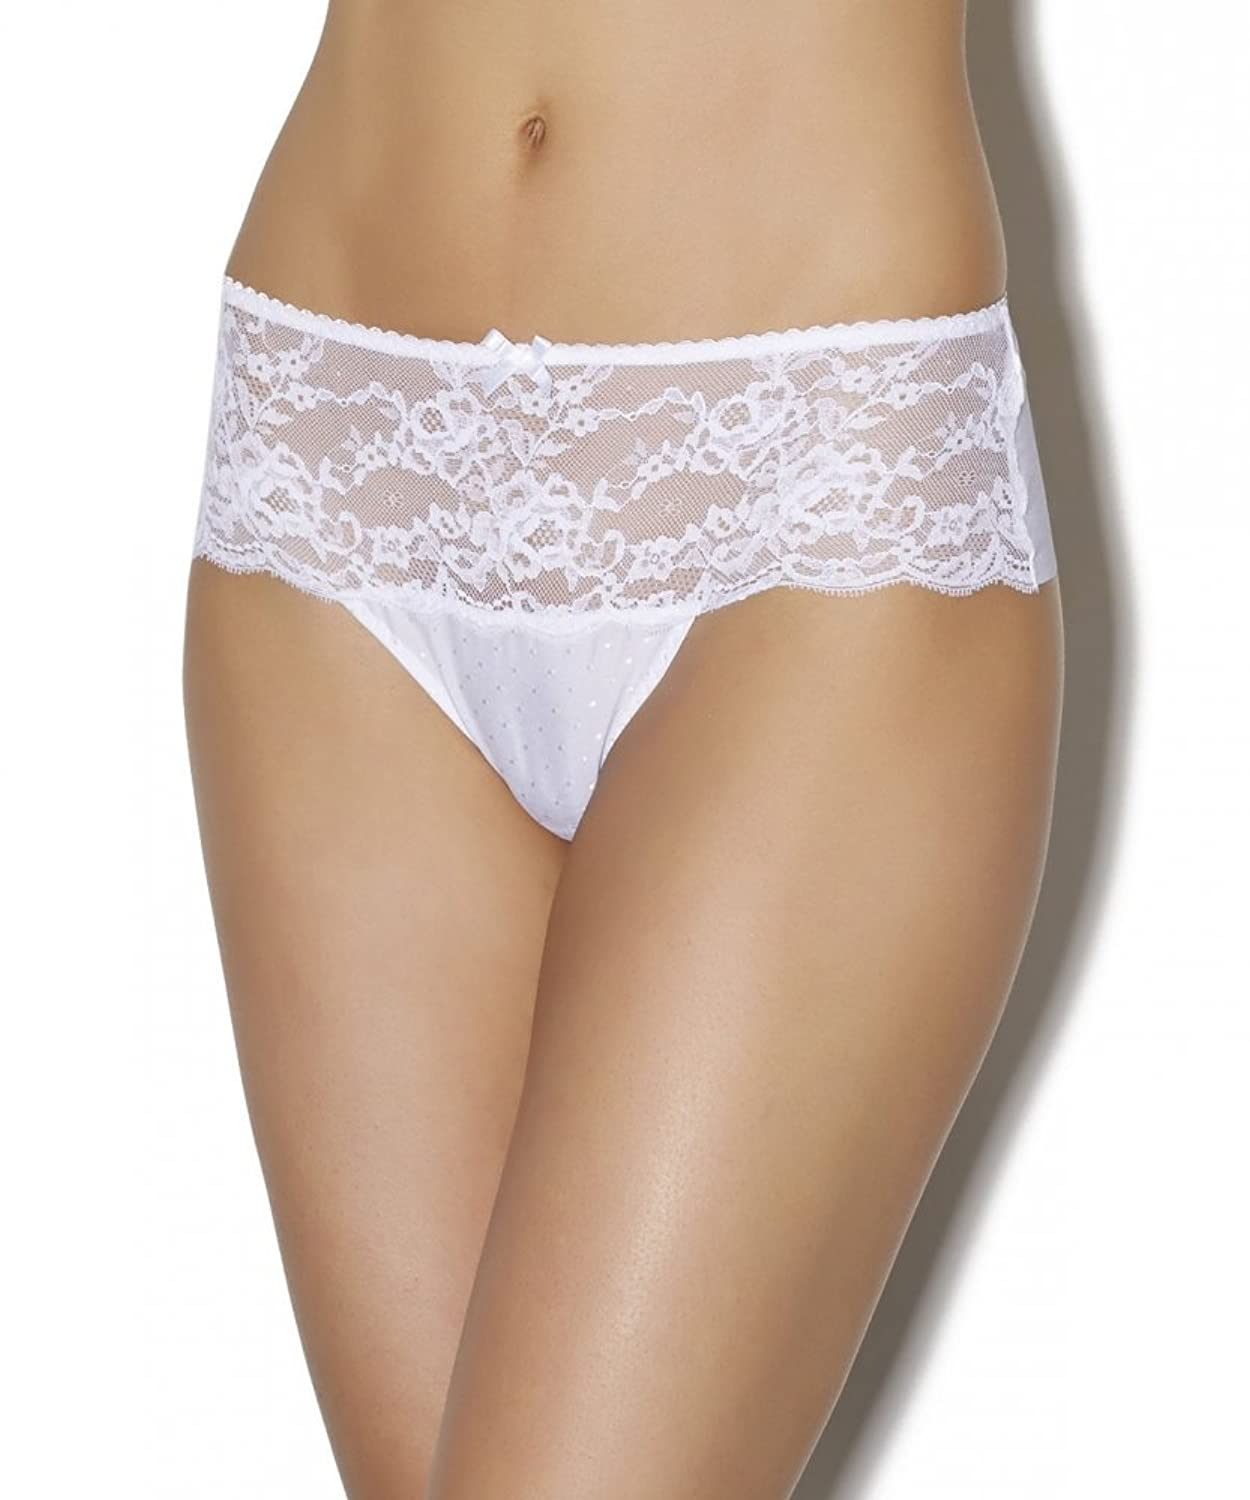 Aubade Hot String Tanga AIR DE SALSA Farbe in weiss AC71